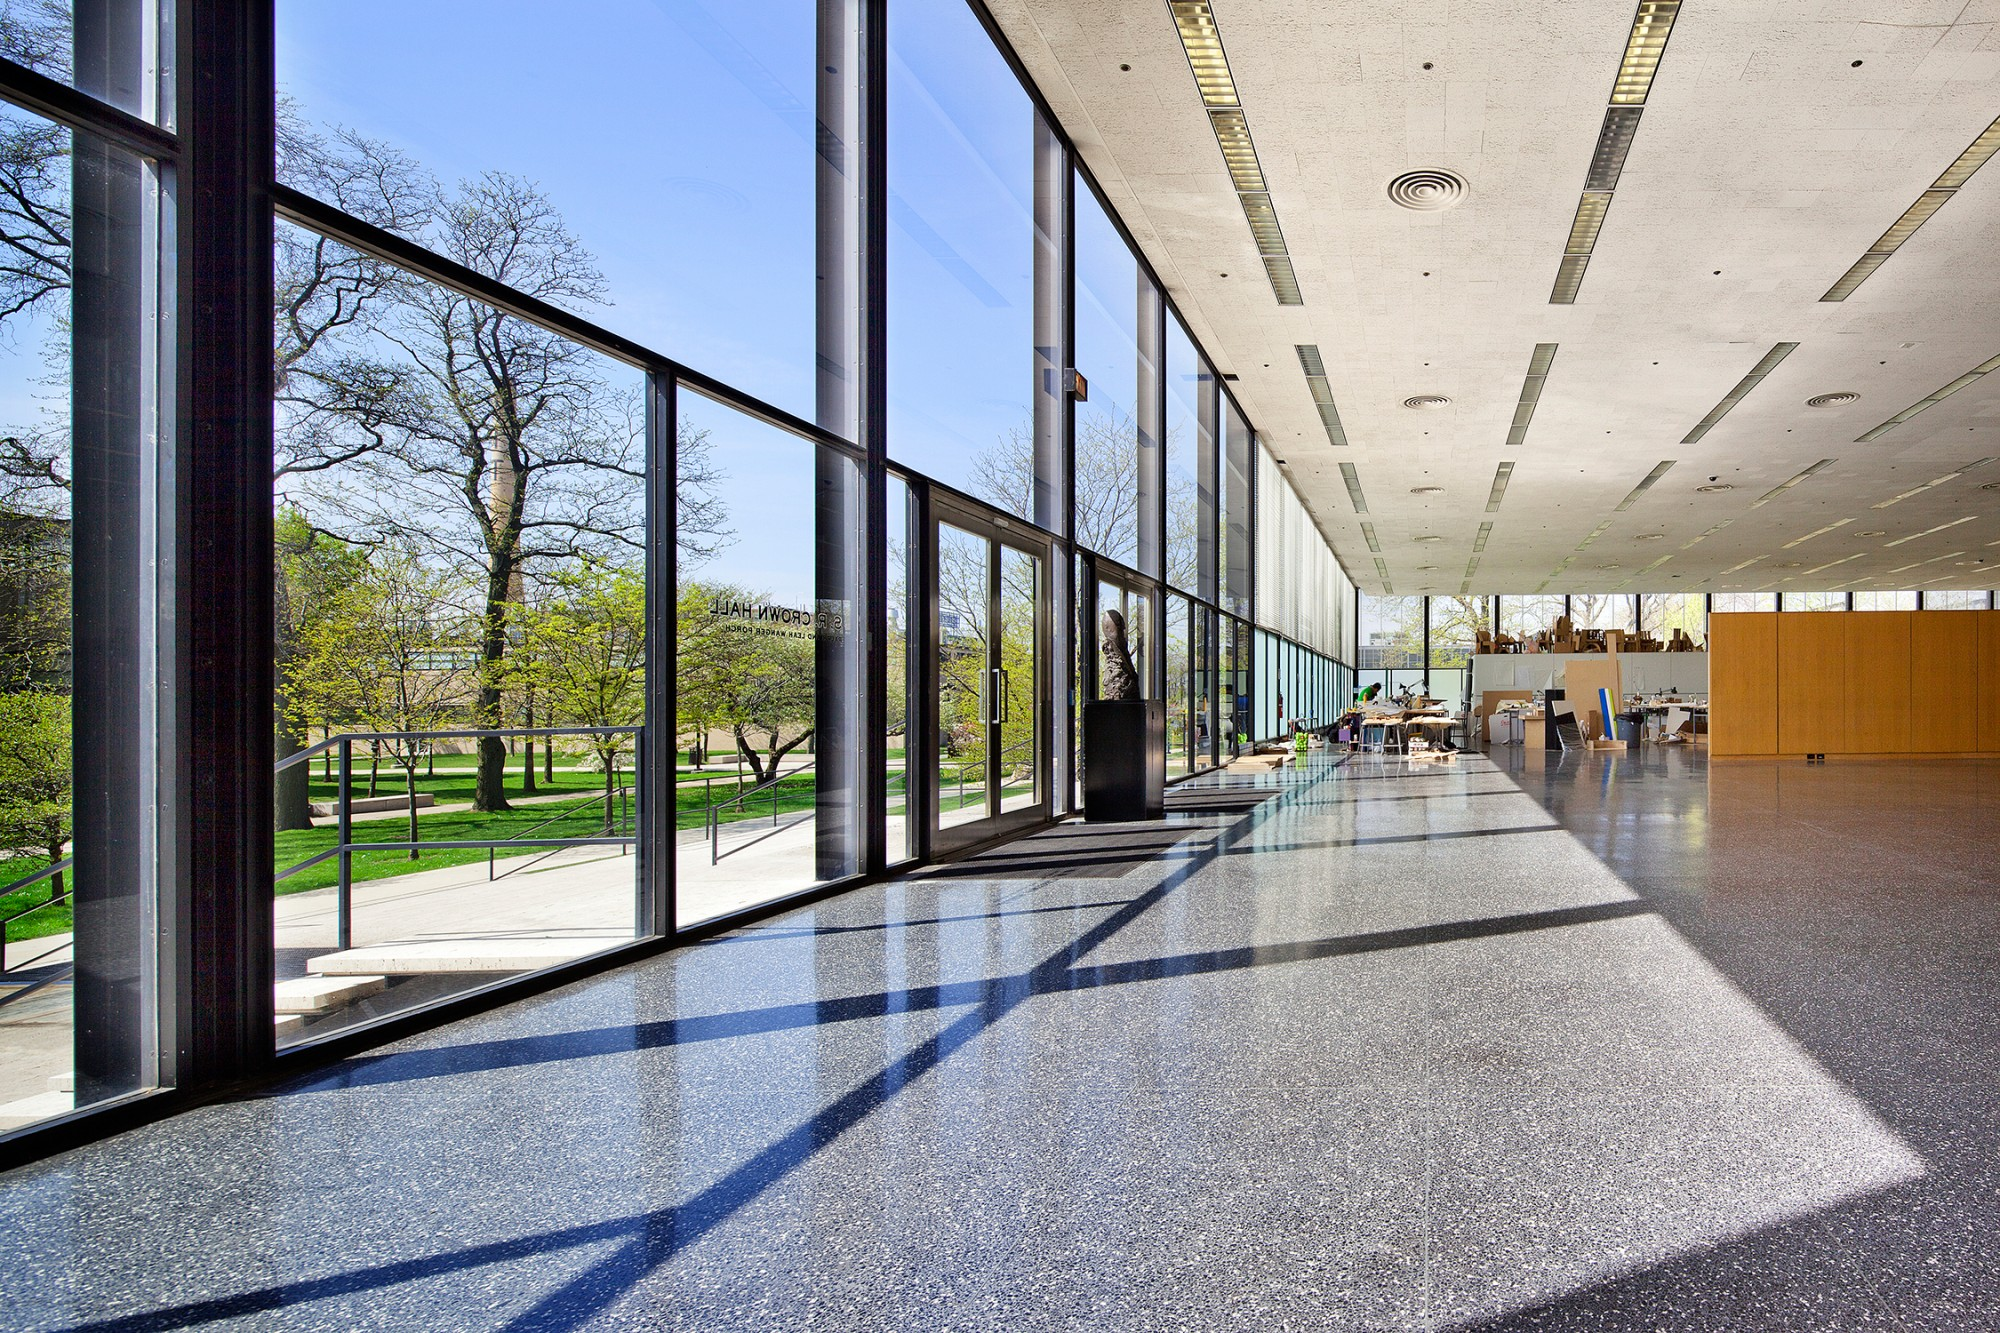 Chicago Mies Van Der Rohe Tour mies and modernism: the iit campus tour · tours · chicago